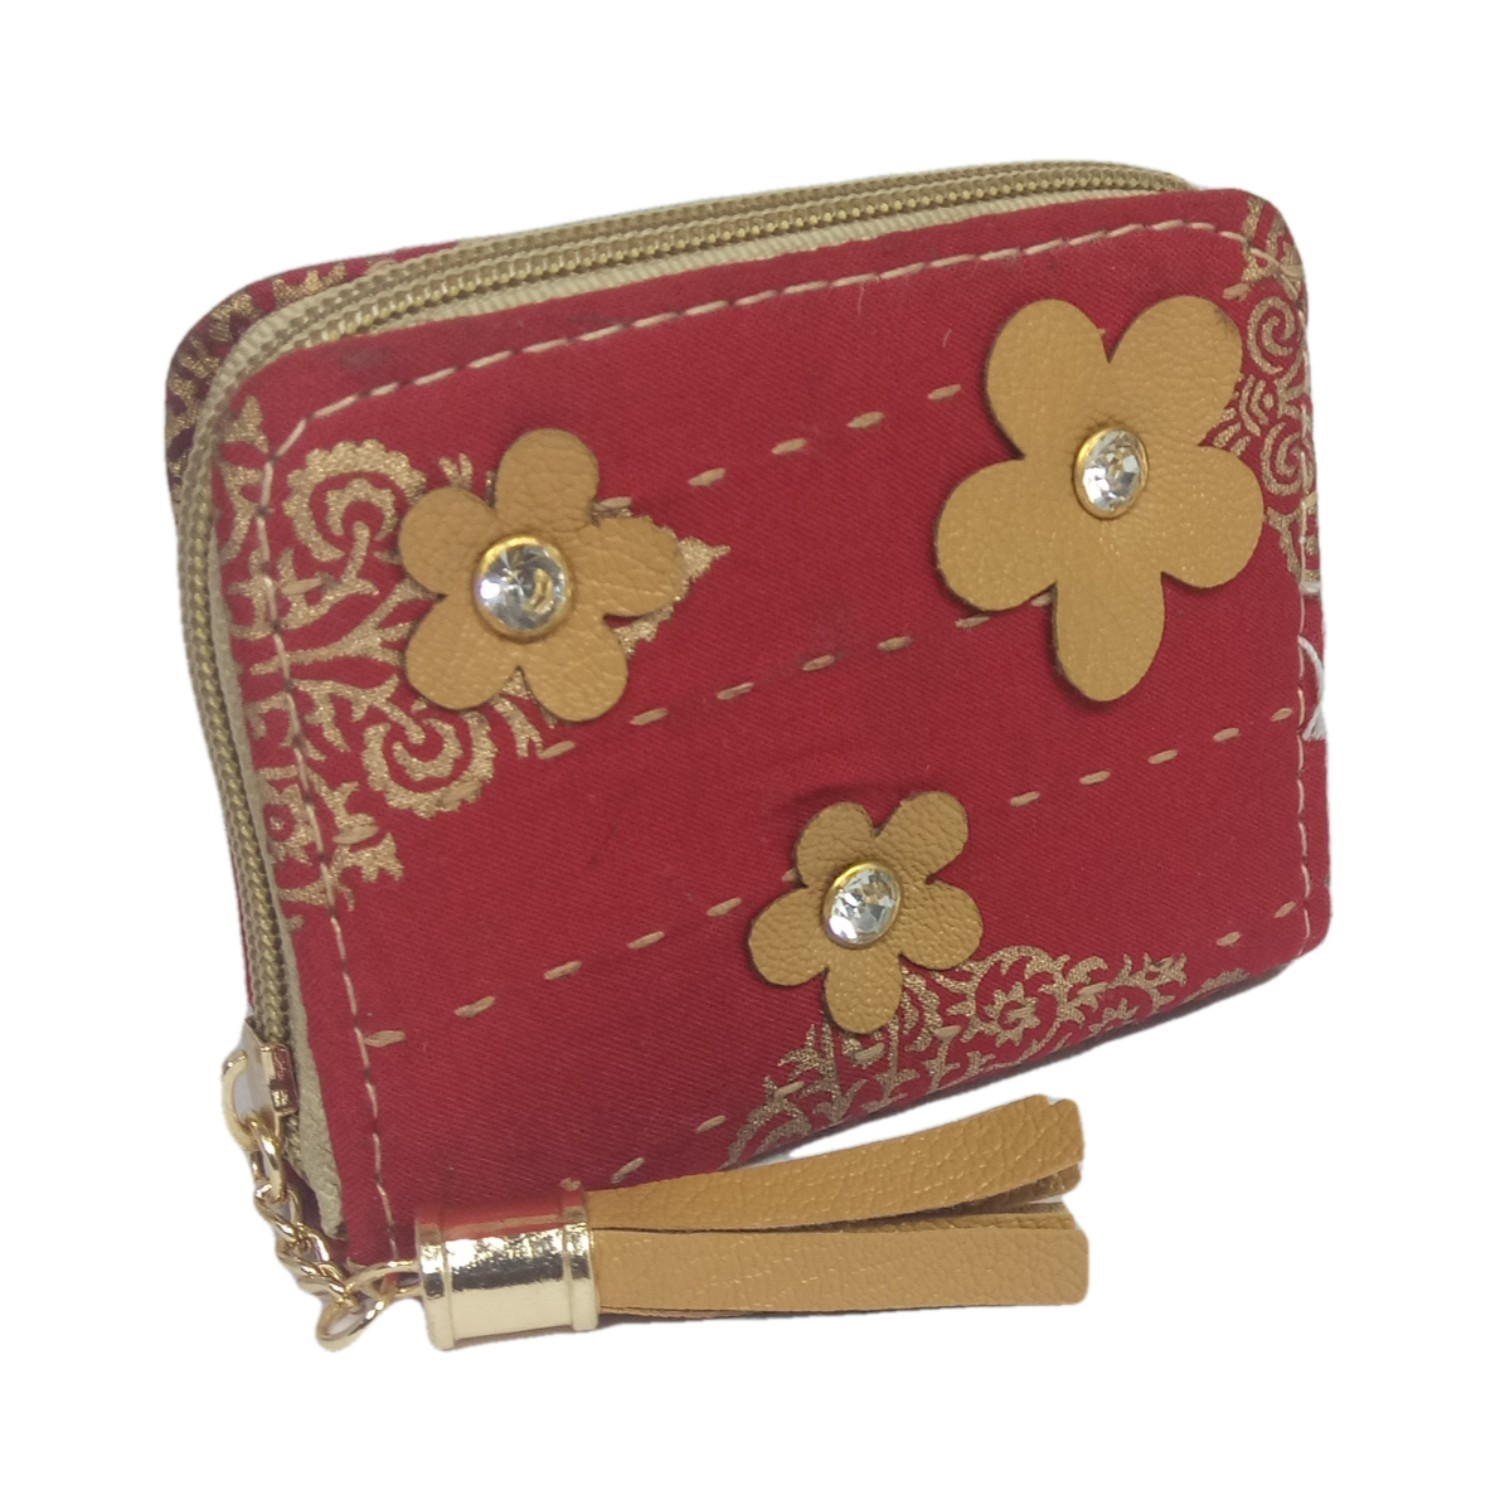 Handmade Excellent Red Genuine Coin Pouch by Women Self Help Groups of Rajasthan